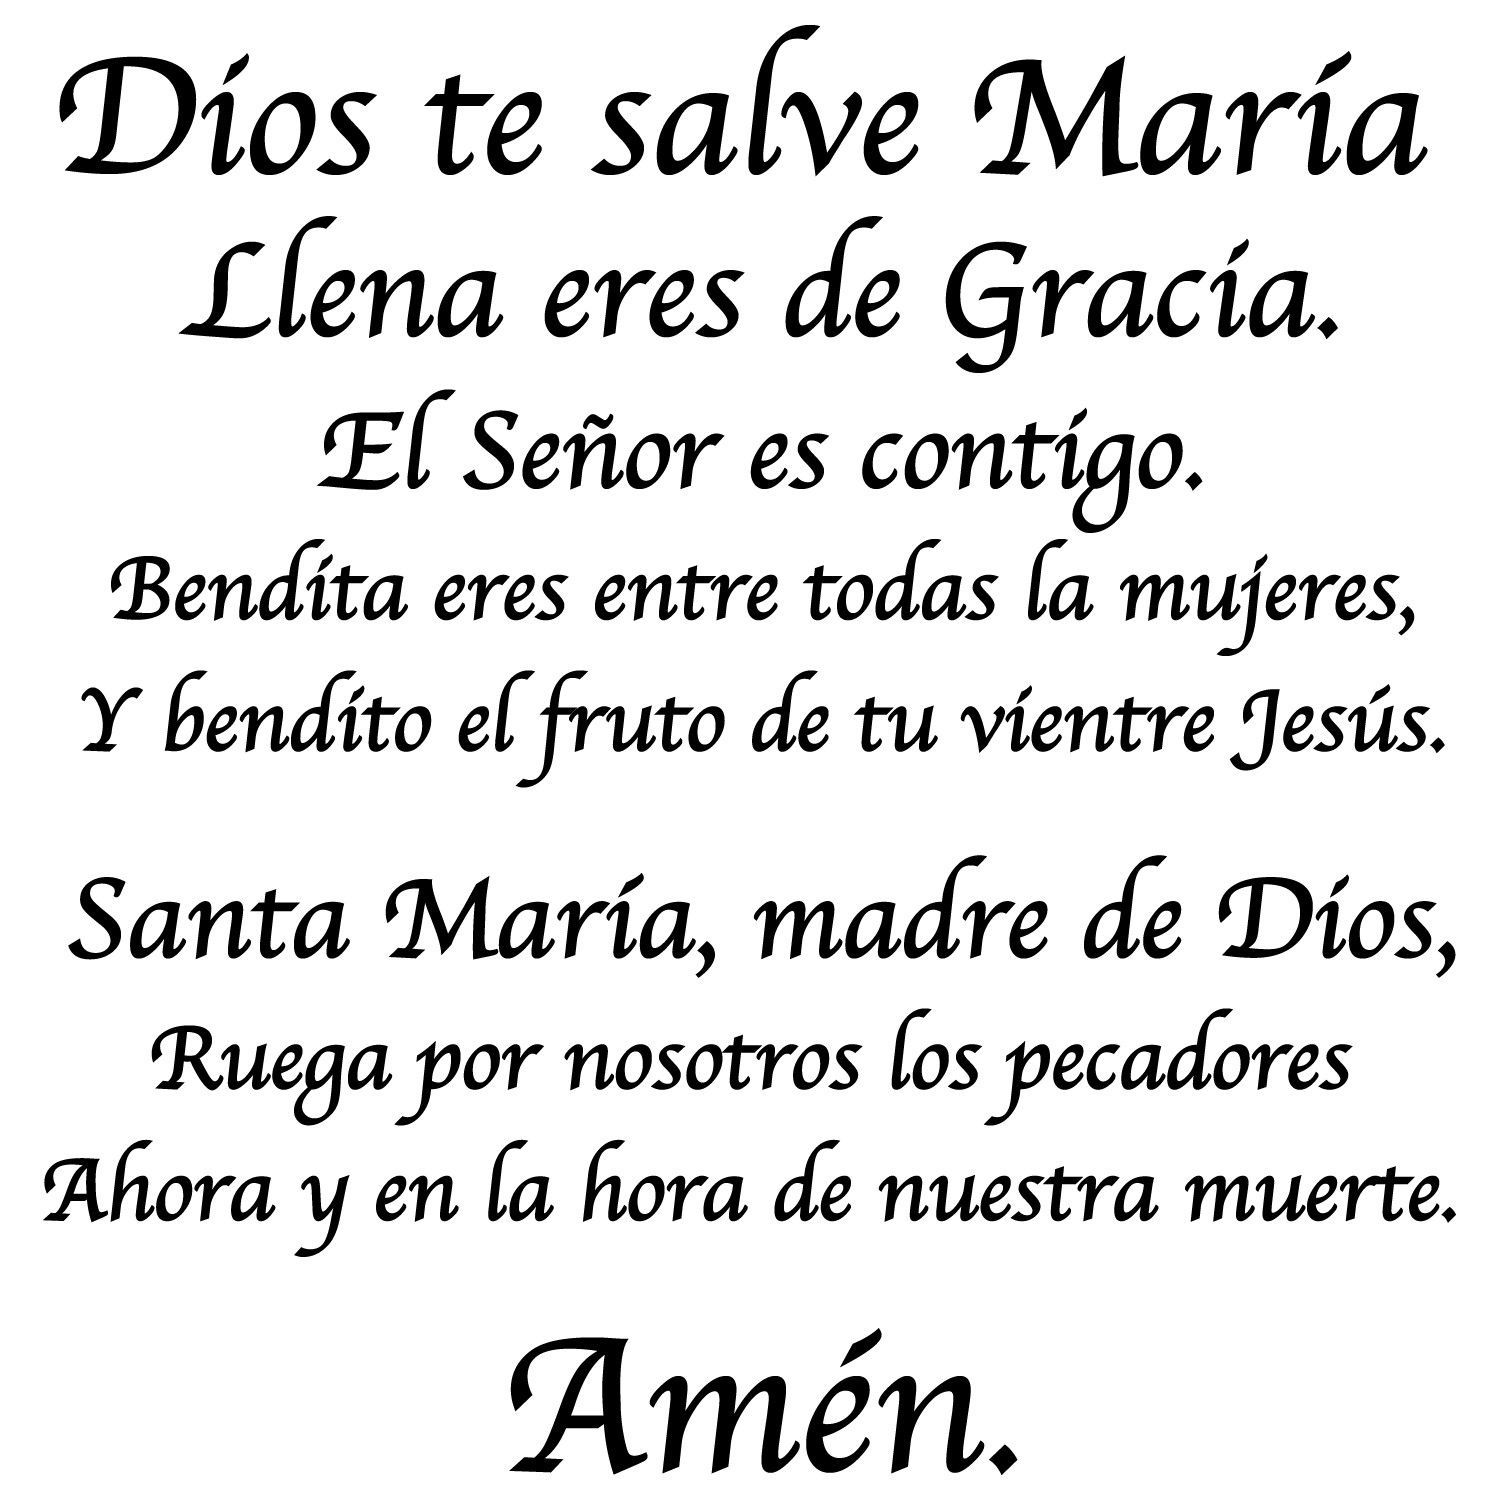 Dios Te Salve Maria Hail Mary In Spanish Hail Mary In Spanish Prayers To Mary Hail Mary